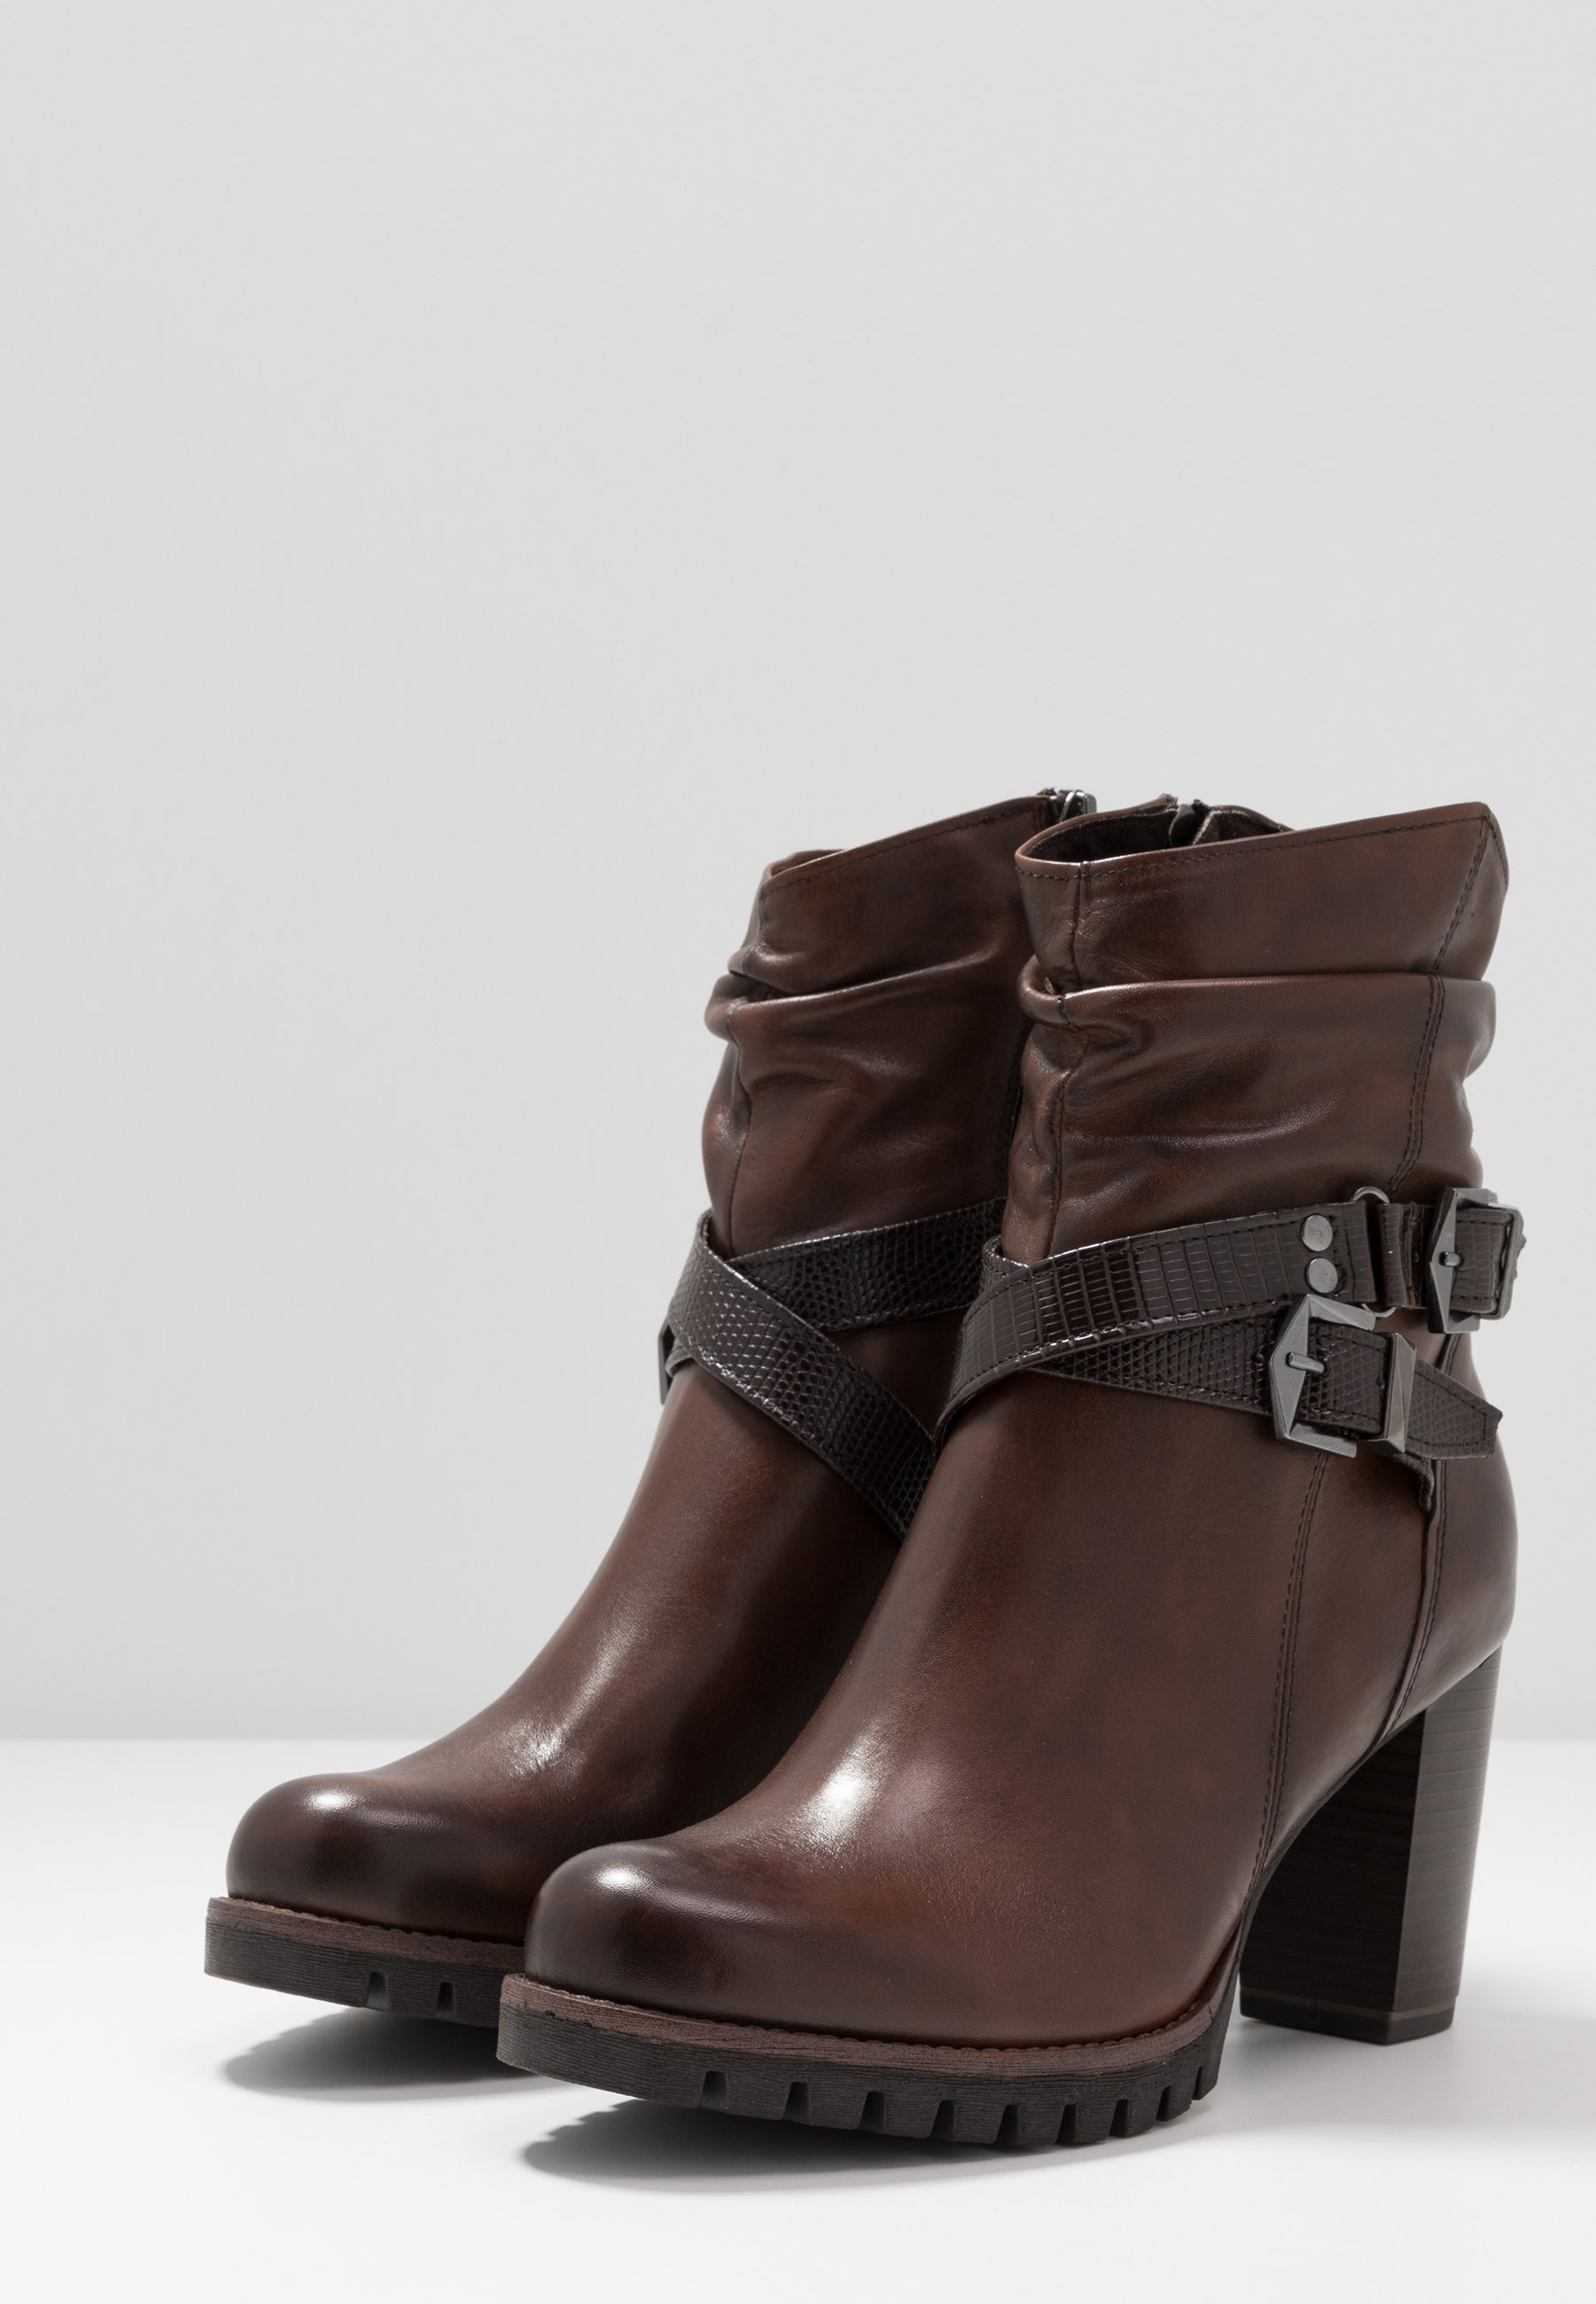 Buy Newest Fast Express Women's Shoes Marco Tozzi Cowboy/biker ankle boot cafe 4KbnIOm9R 74pYUyTRz